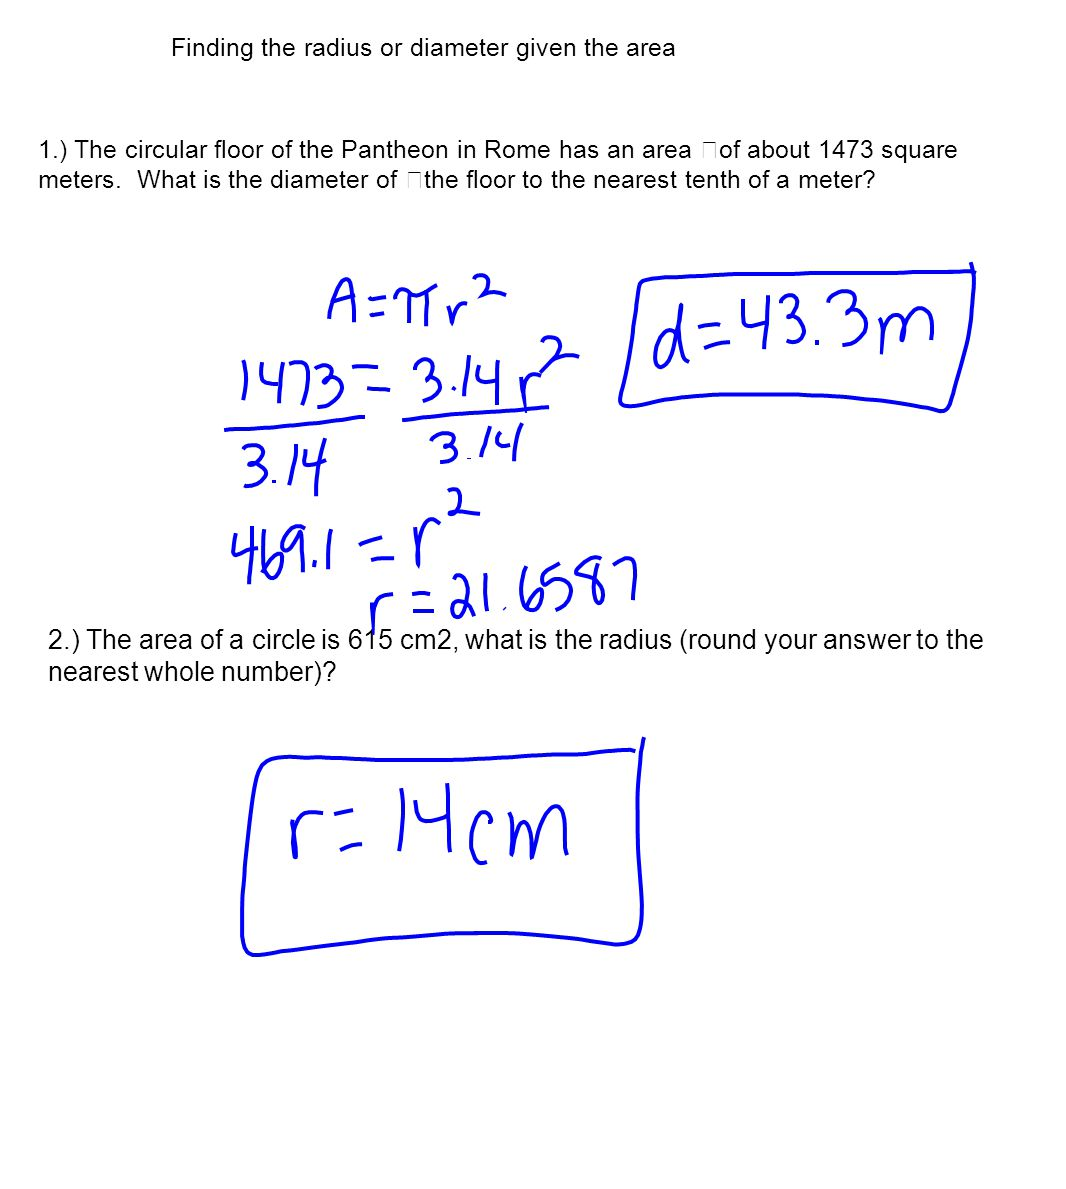 Finding The Radius Or Diameter Given The Area